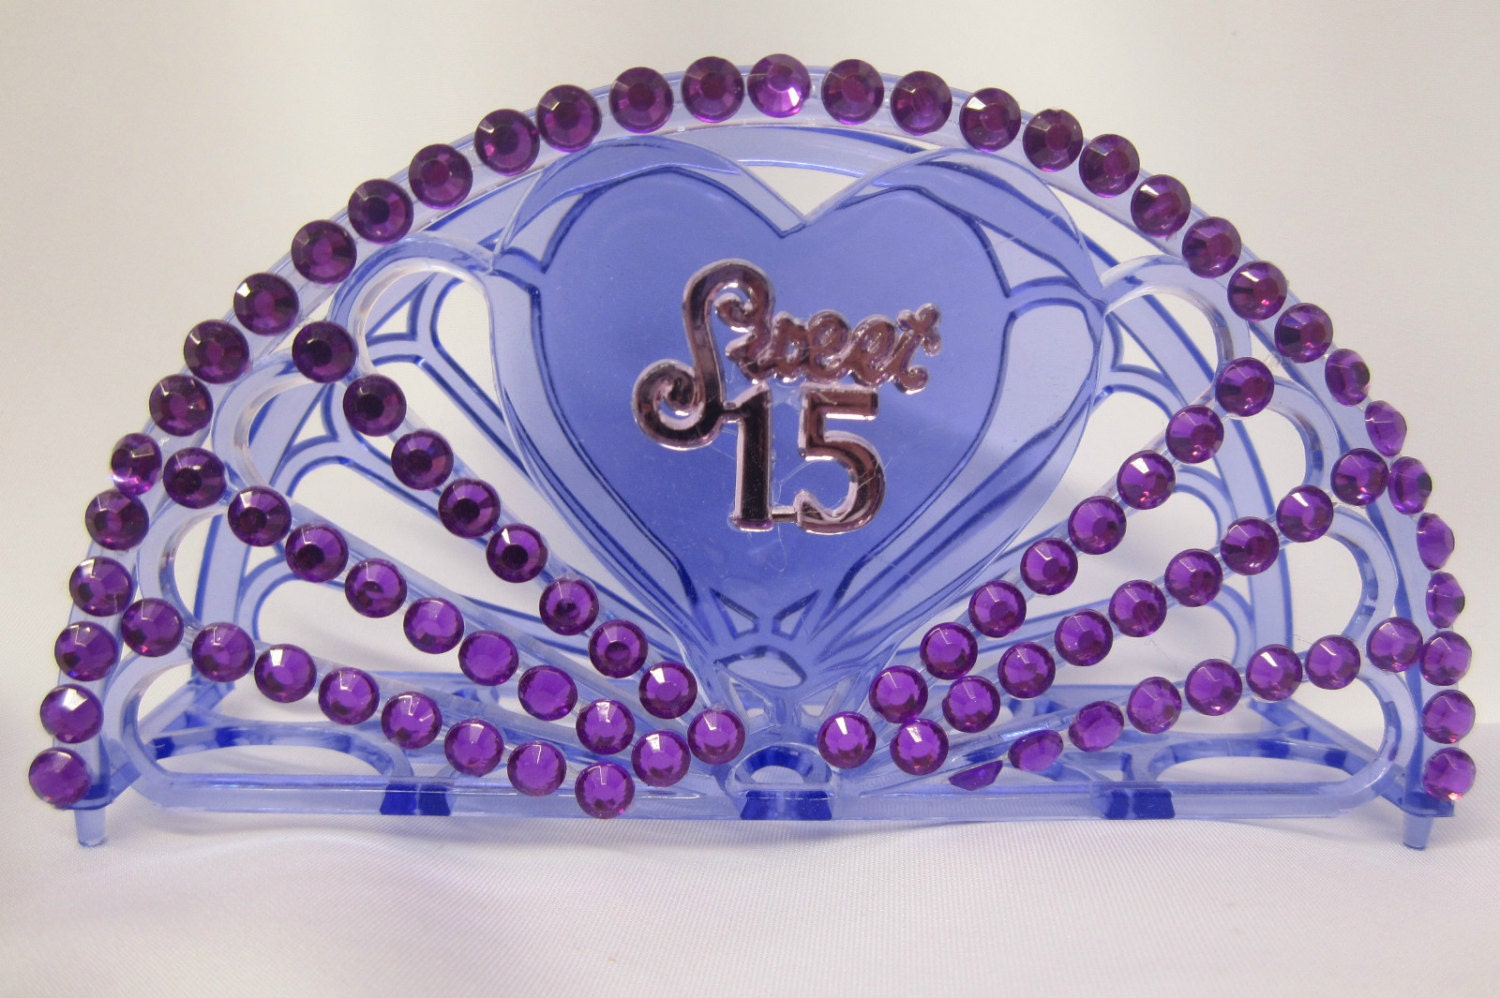 Mis 15 Anos Bracelet: 5 Sweet 15 Napkin Holder Party Favor GiftMis Quince Anos You